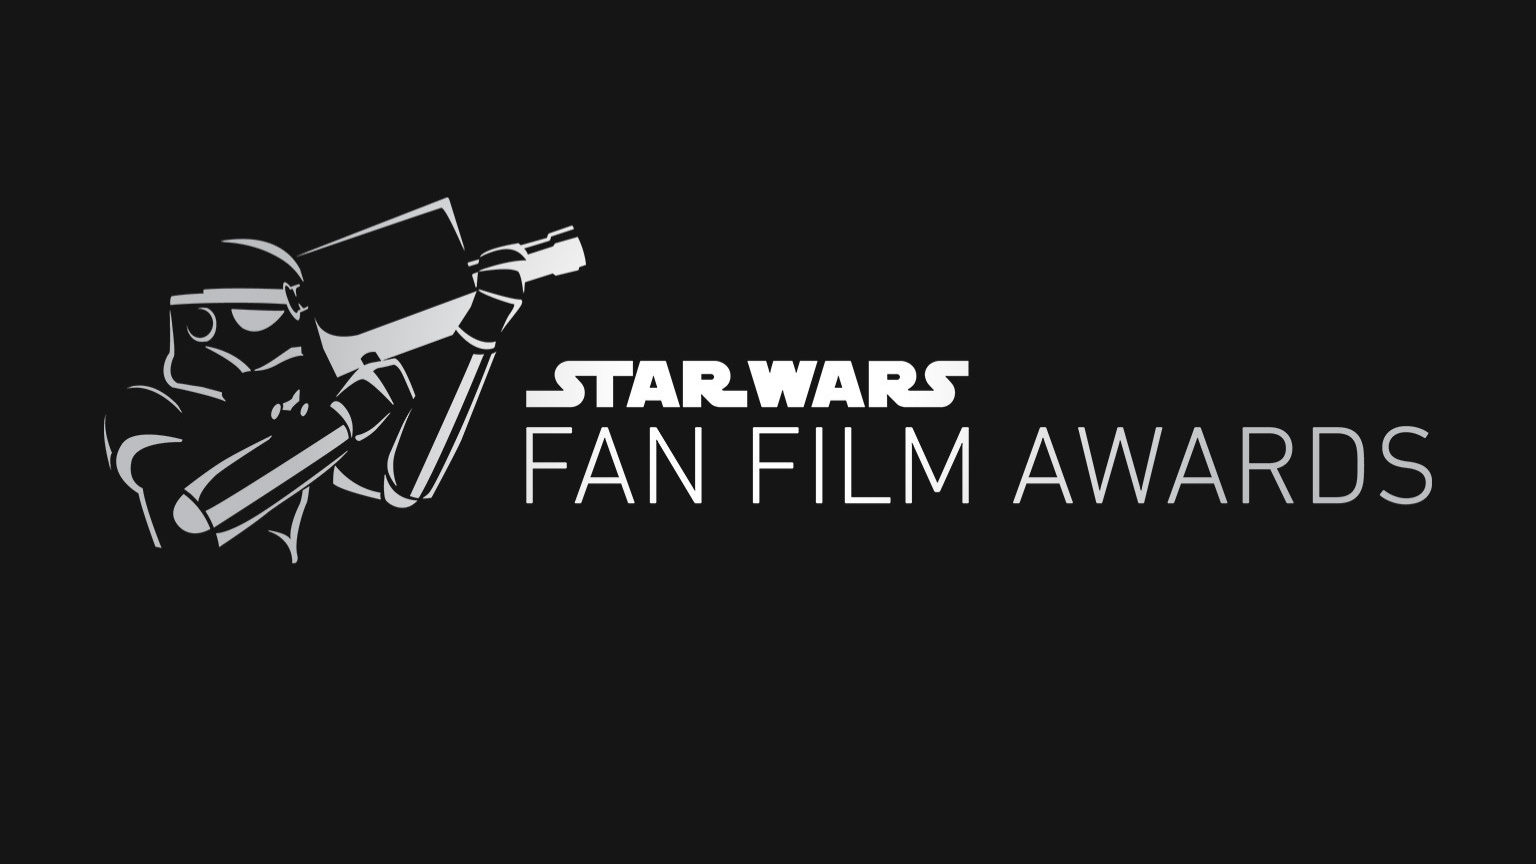 Star Wars Fan Film Awards